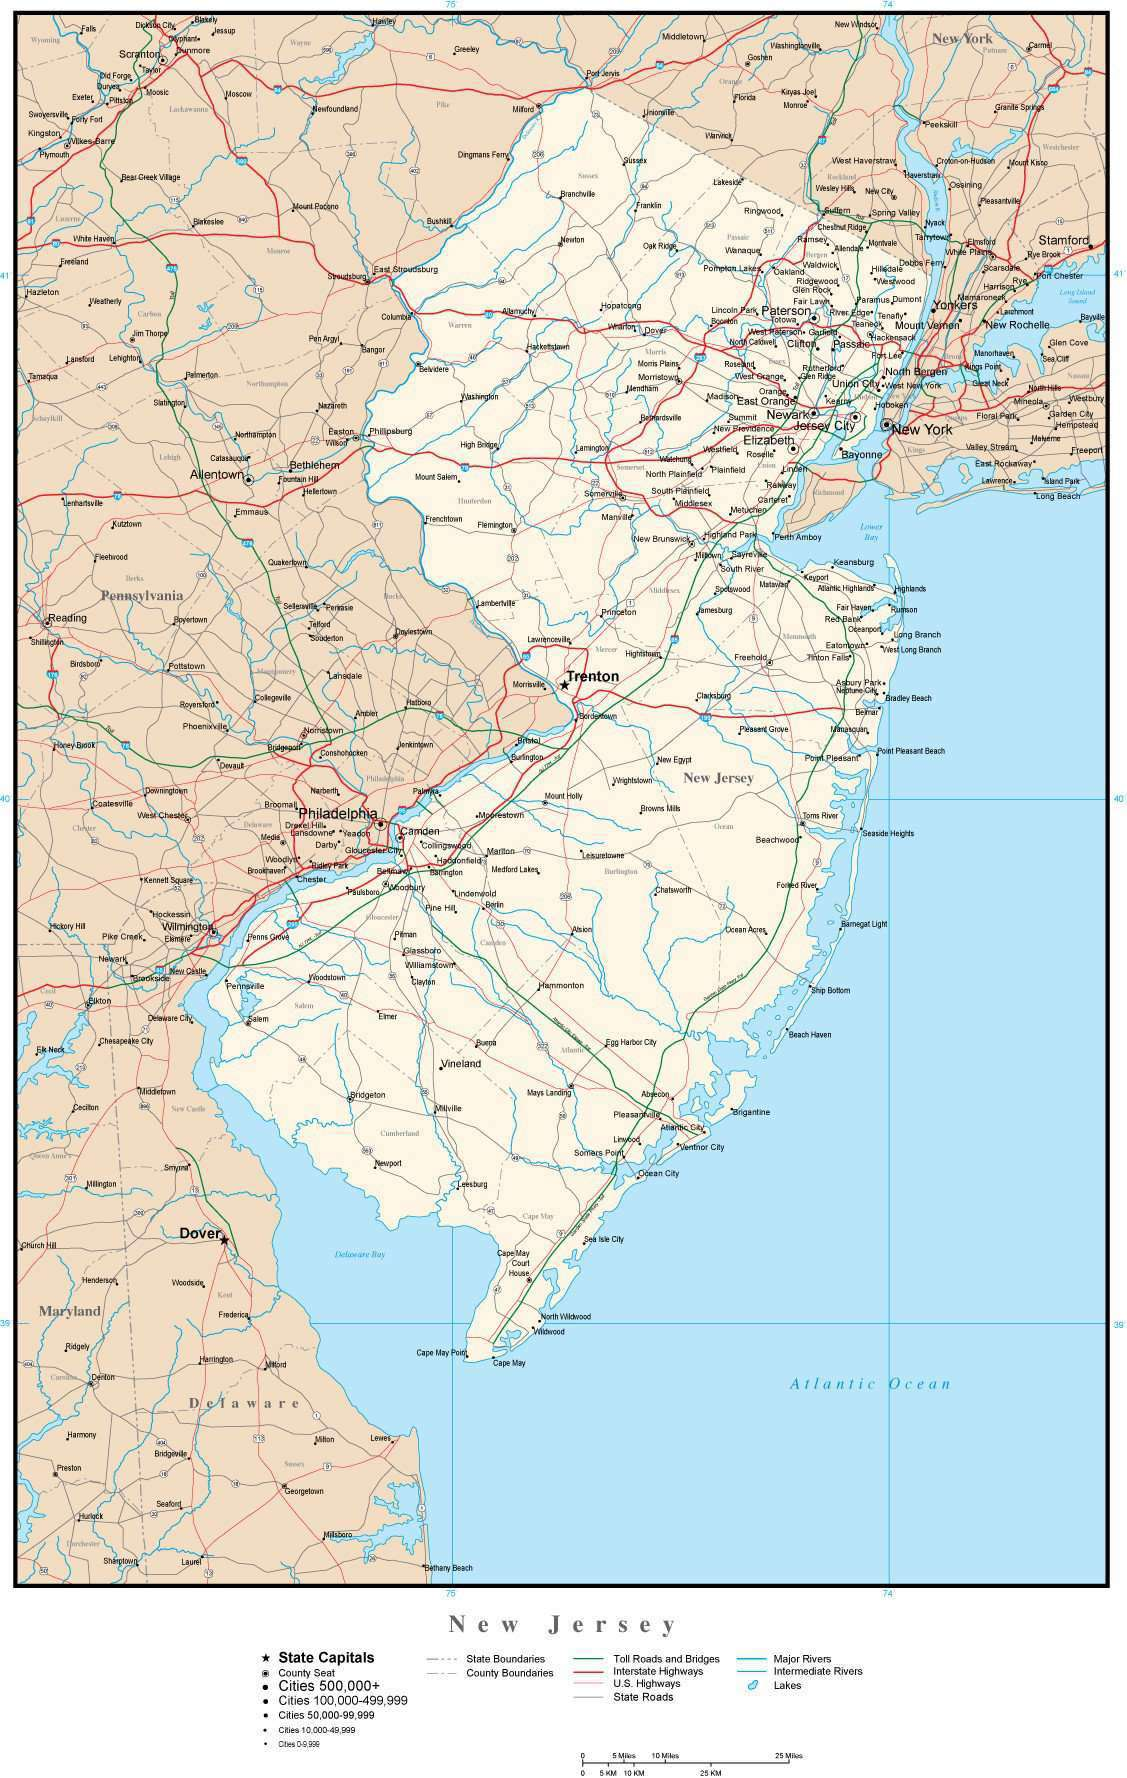 New Jersey Map with Capital, County Boundaries, Cities, Roads, and Water  Features